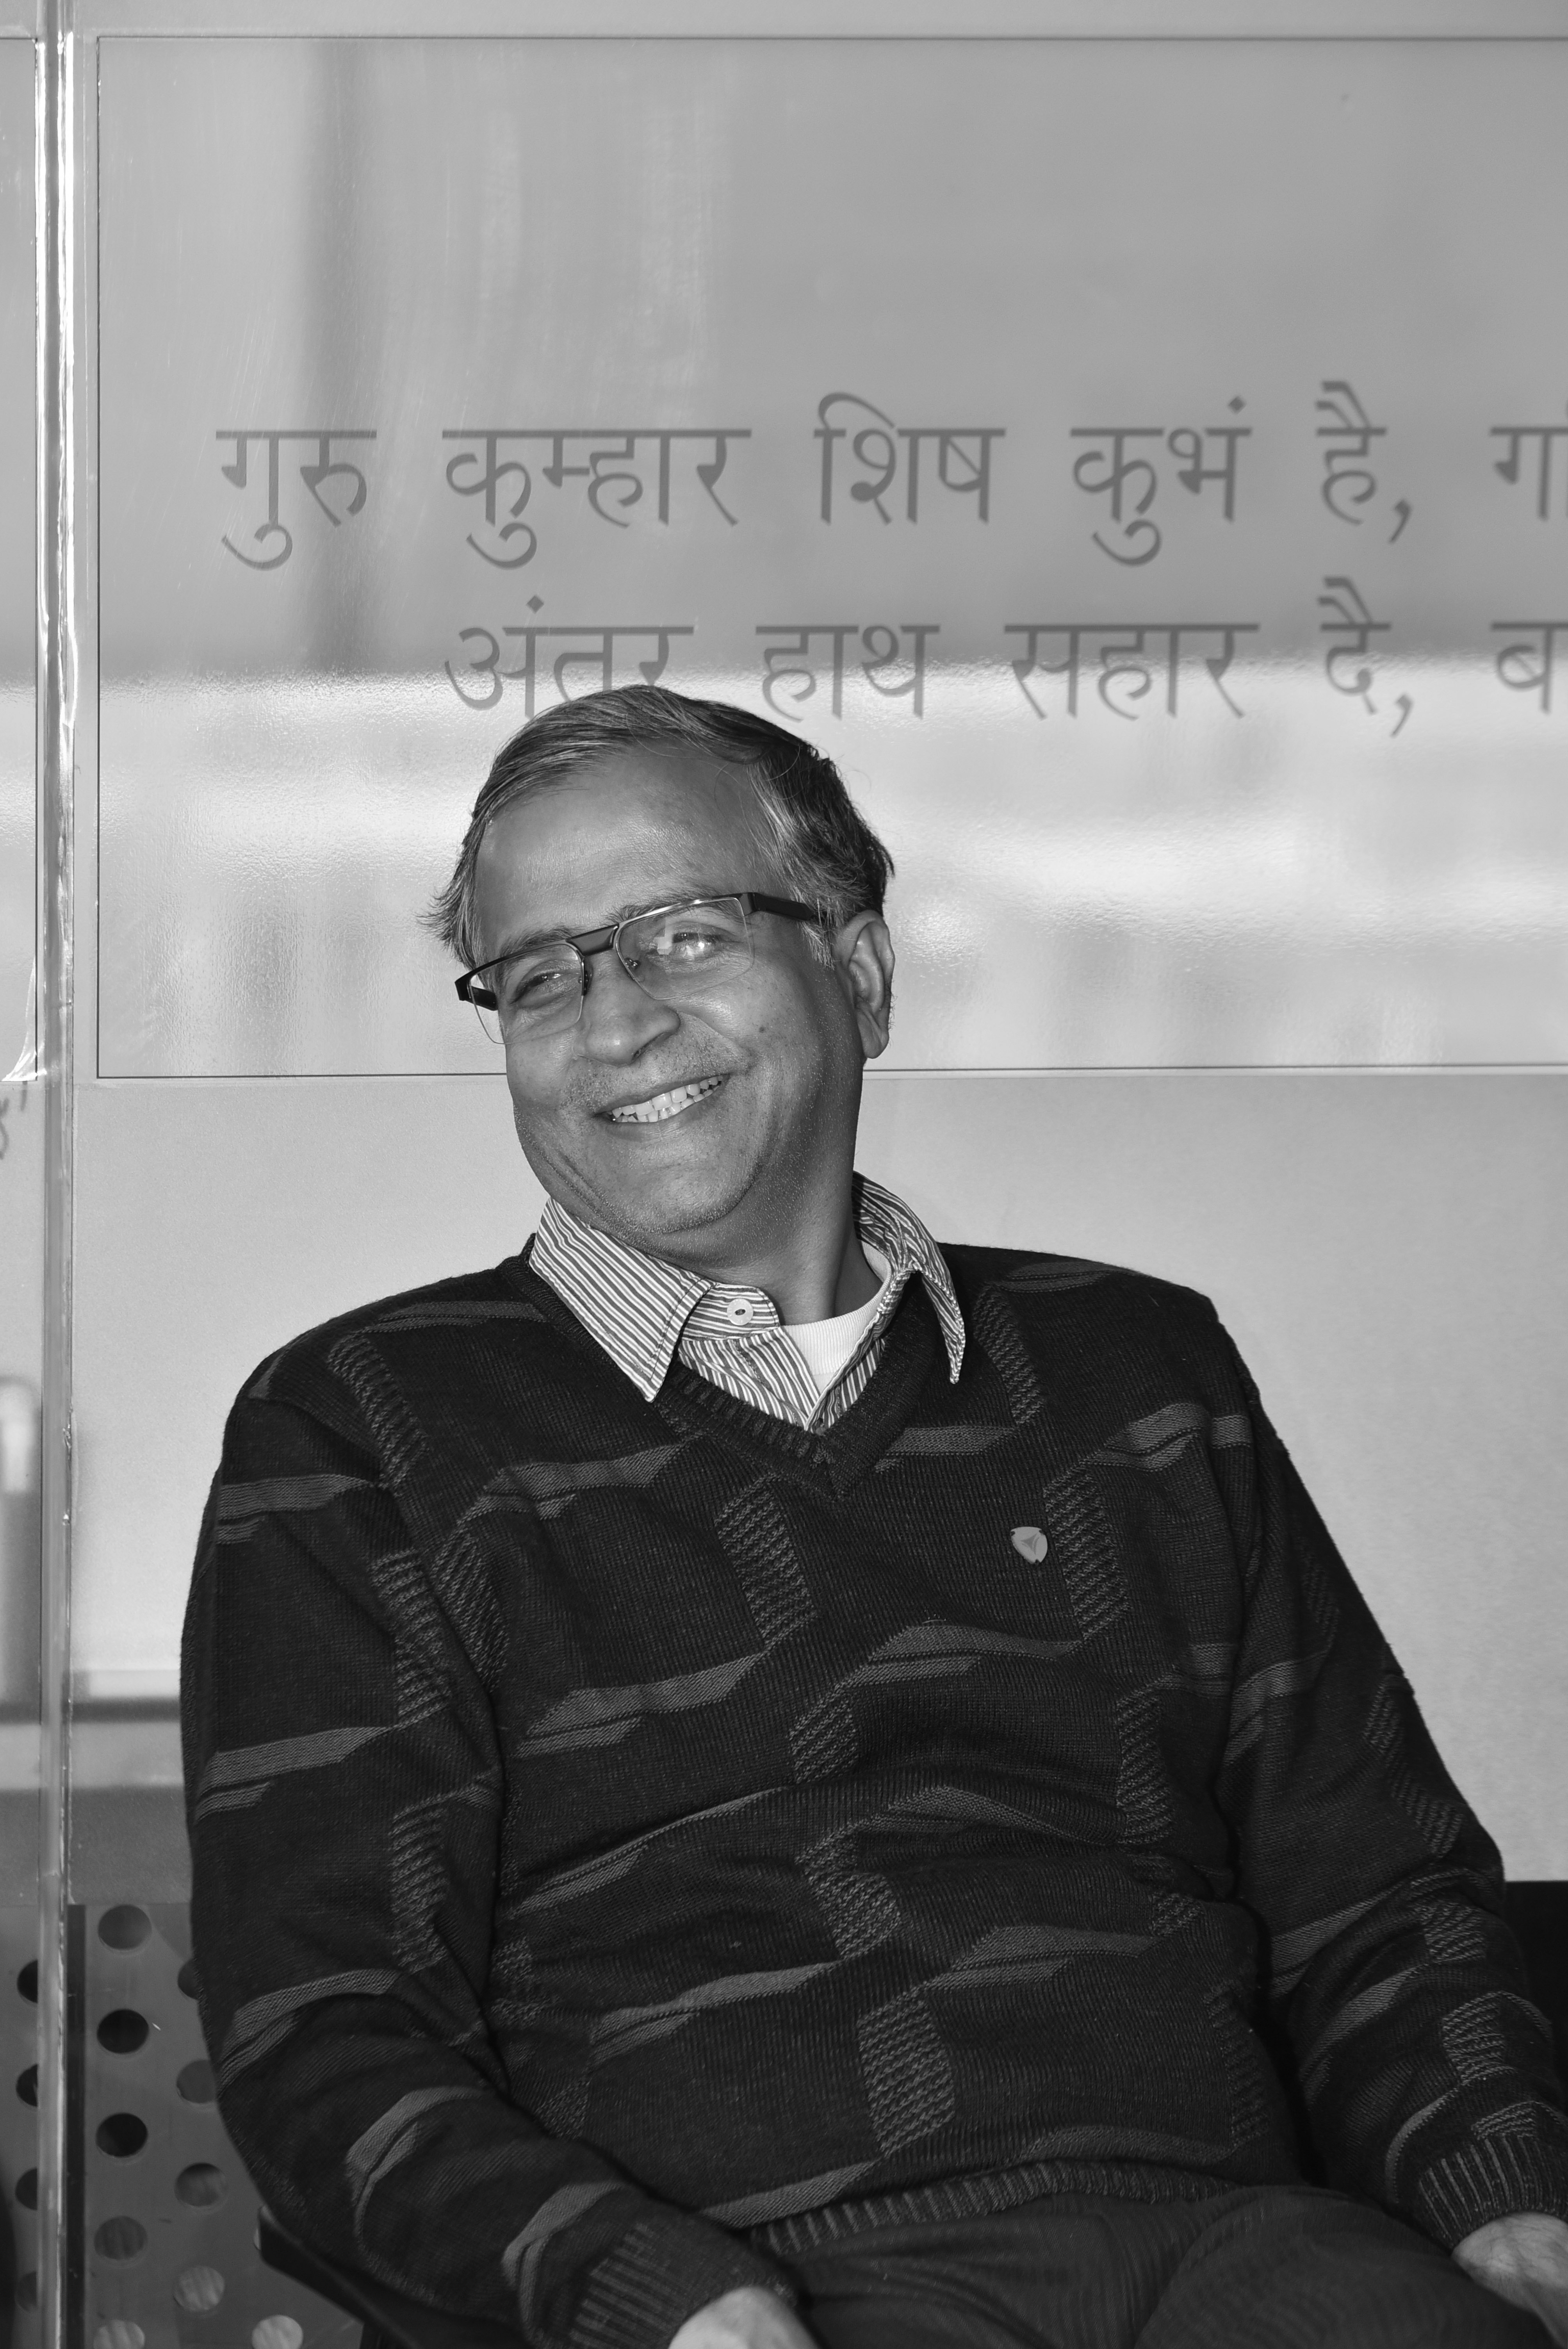 Rajat Jain black and white